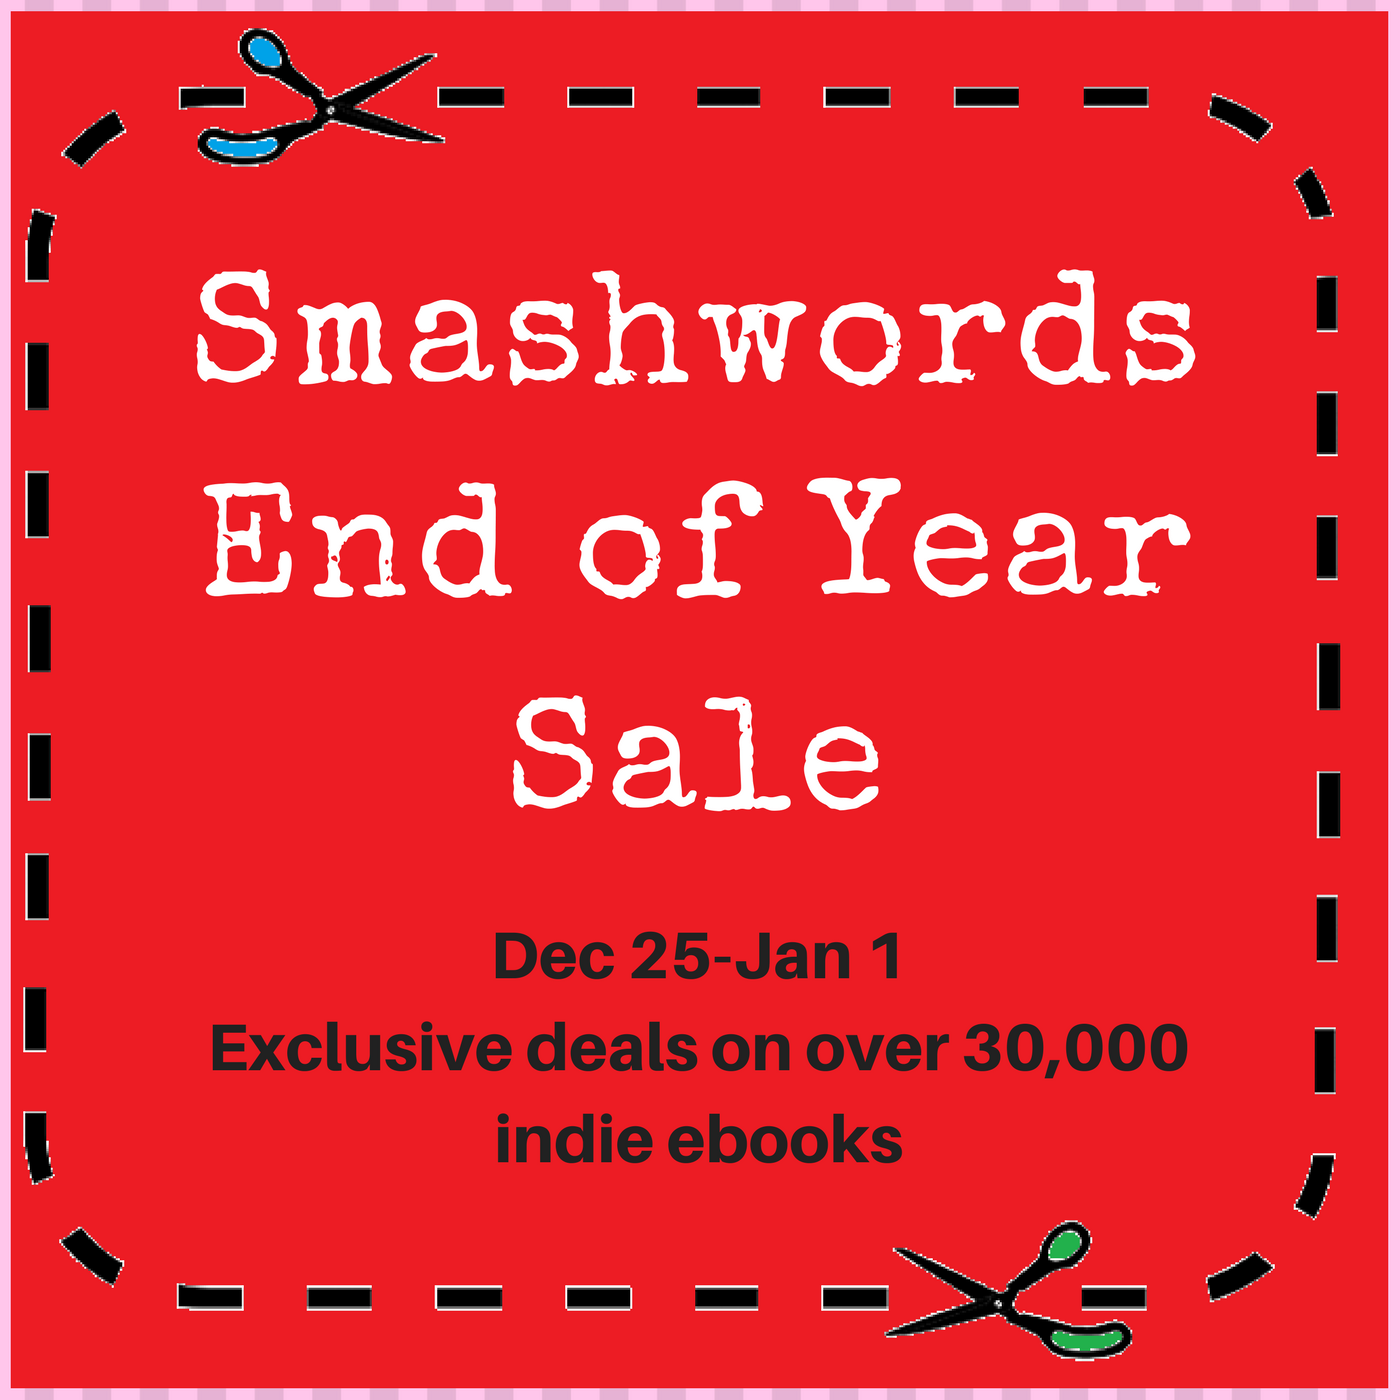 Smashwordsendofyearsaleg smashwords end of year sale starts december 25 fandeluxe